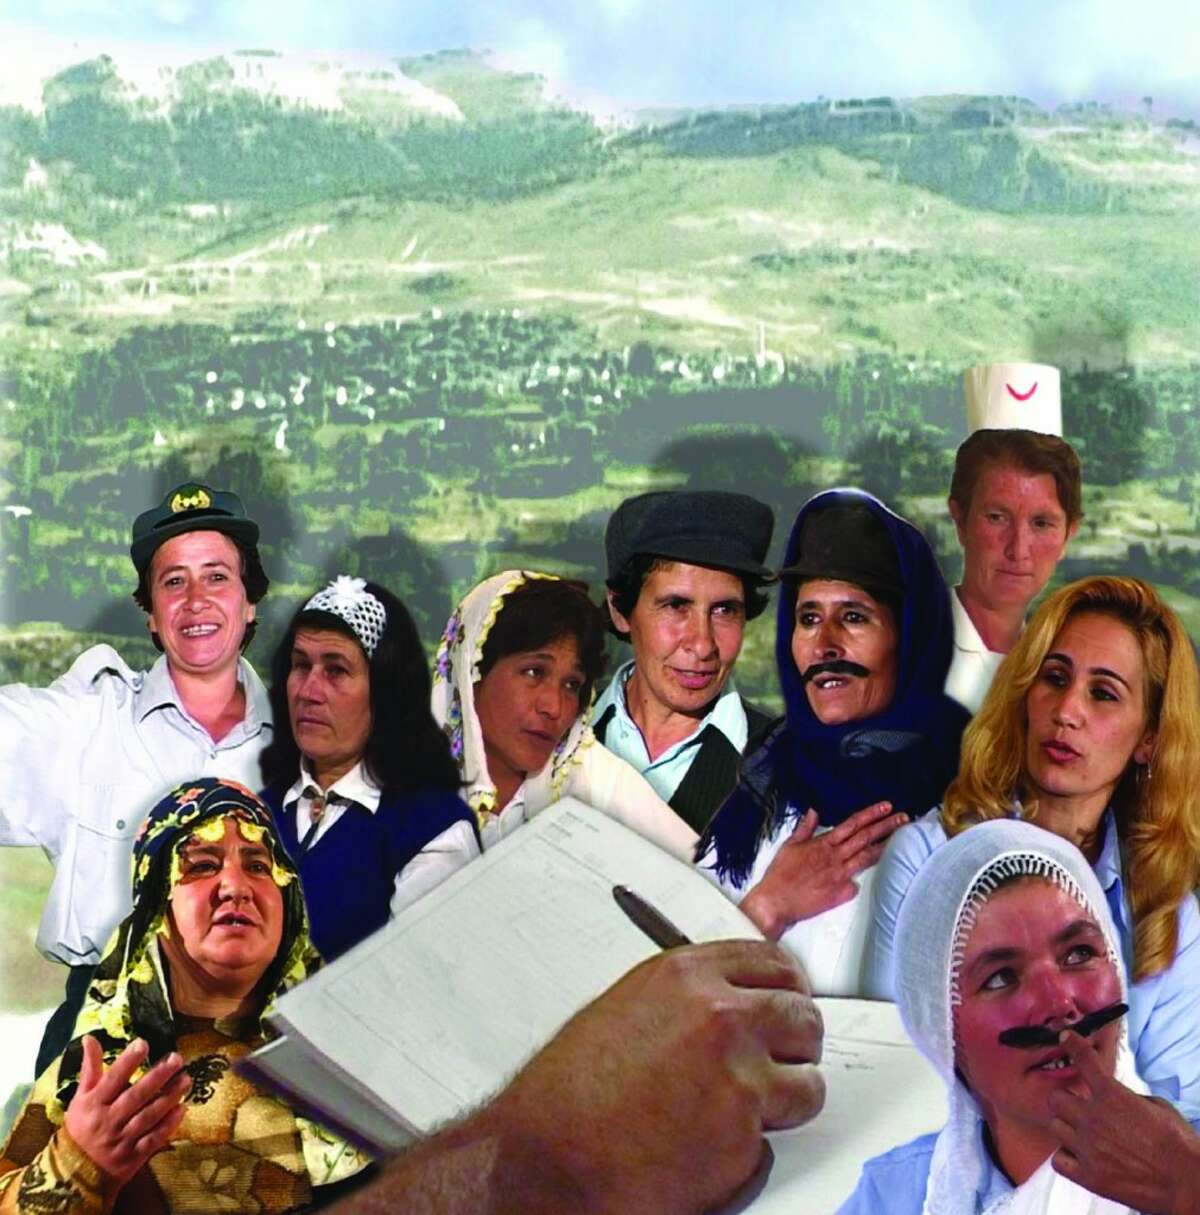 """International Women's Day: Nine women from Turkey play themselves in a foreign film called """"The Play"""", which tells the story of their lives in a mountain village. The movie is being shown as part of Women's History Month, and a celebration of International Women's Day. (Courtesy Photo)"""